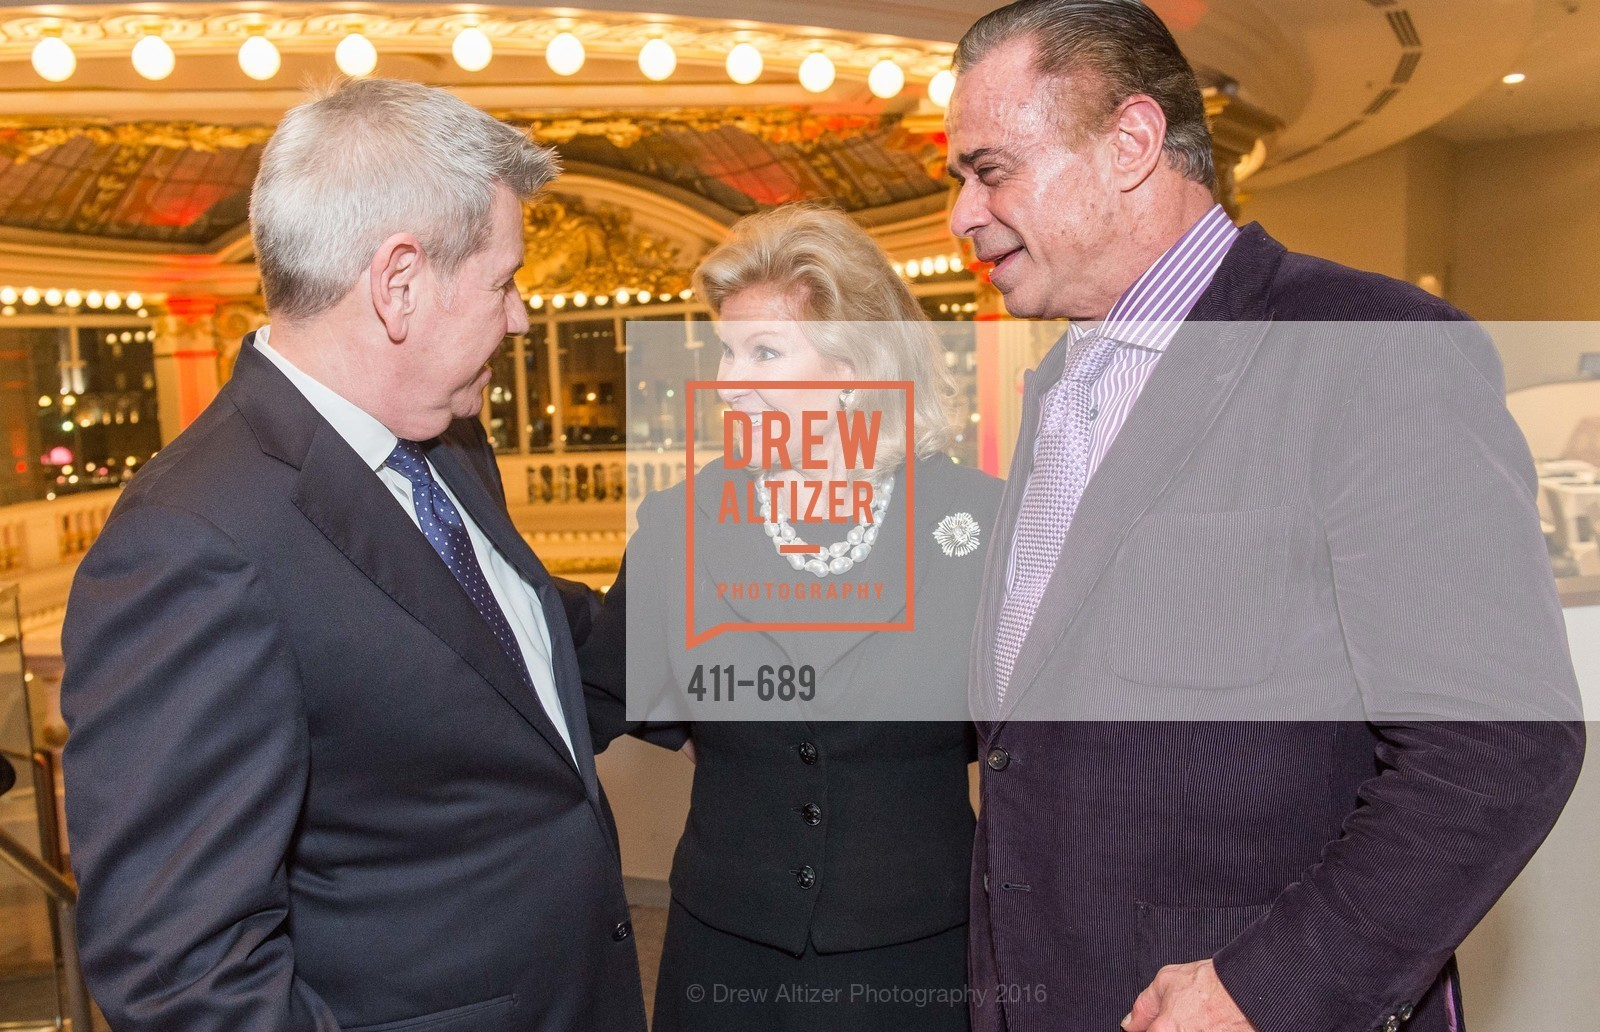 Richard Benefield, Dede Wilsey, Boaz Mazor, Oscar de la Renta Cocktail Party with Boaz Mazor, The Rotunda Restaurant, January 19th, 2016,Drew Altizer, Drew Altizer Photography, full-service agency, private events, San Francisco photographer, photographer california